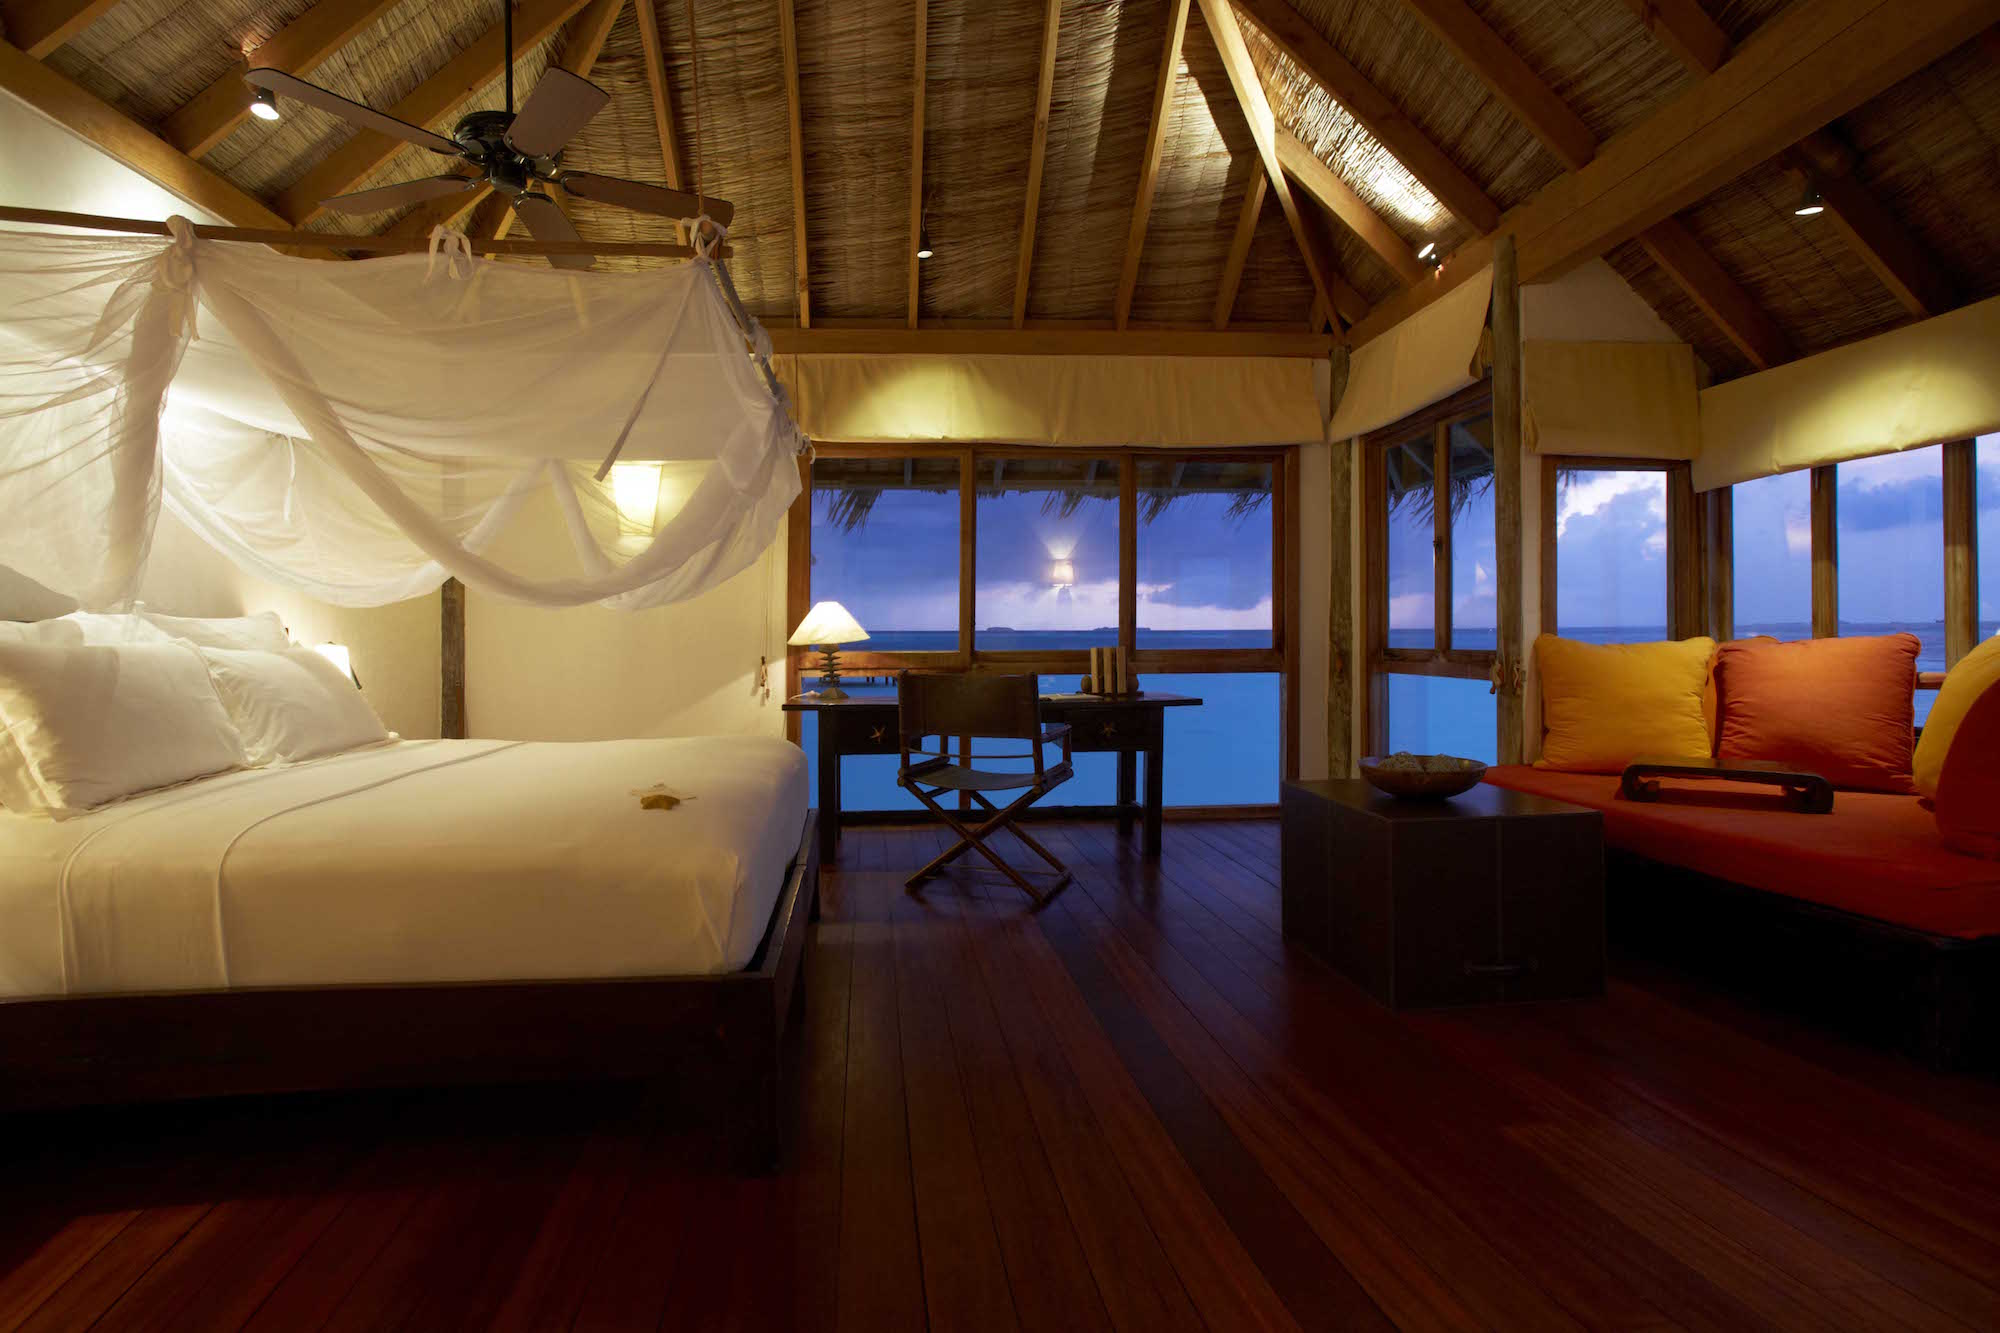 Gili Lankanfushi Resort Maldives - Villa Bedroom